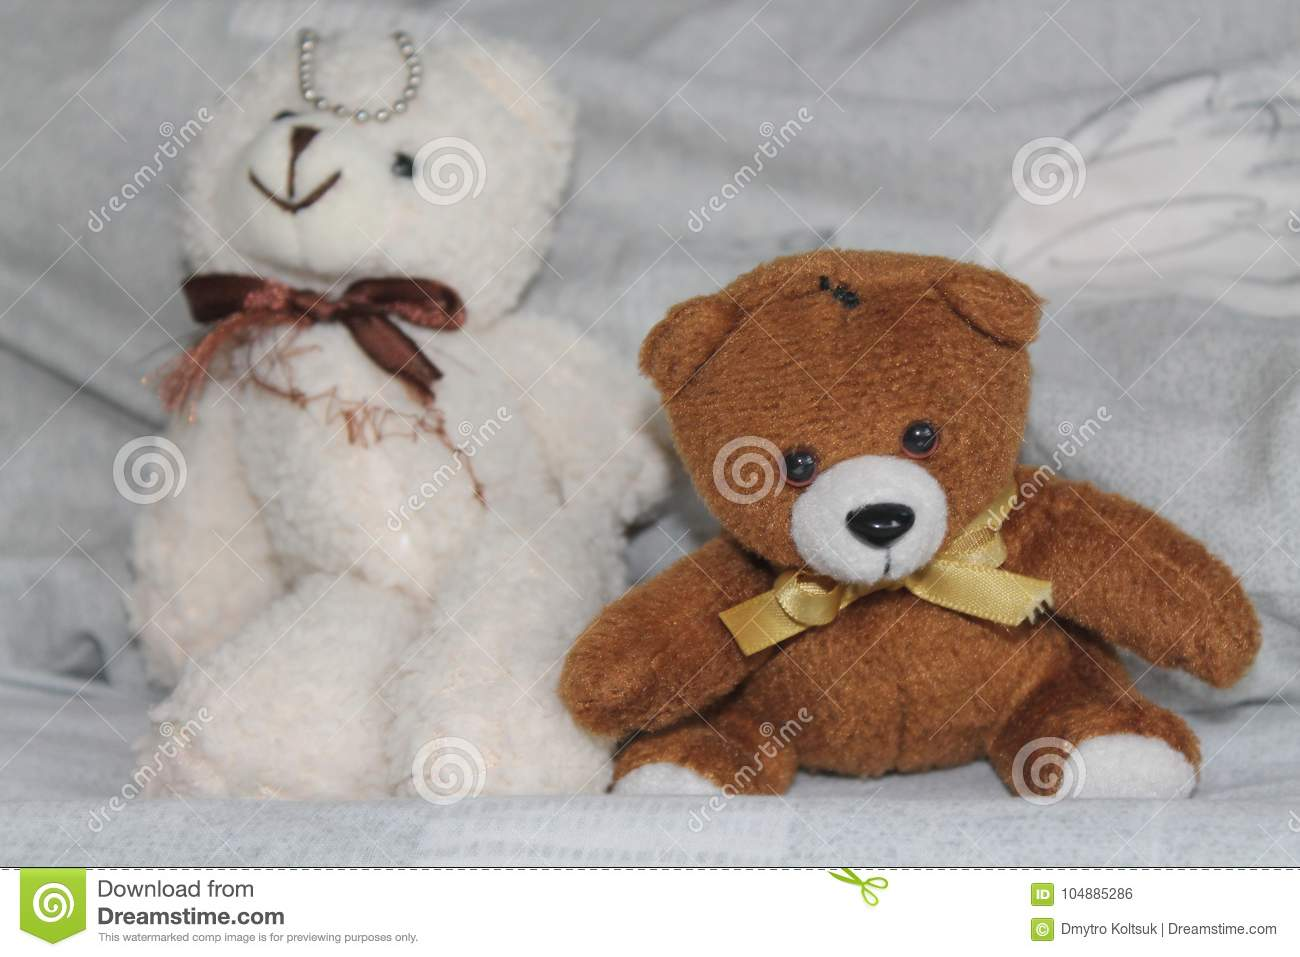 White and black Bears toy sitting on the bed